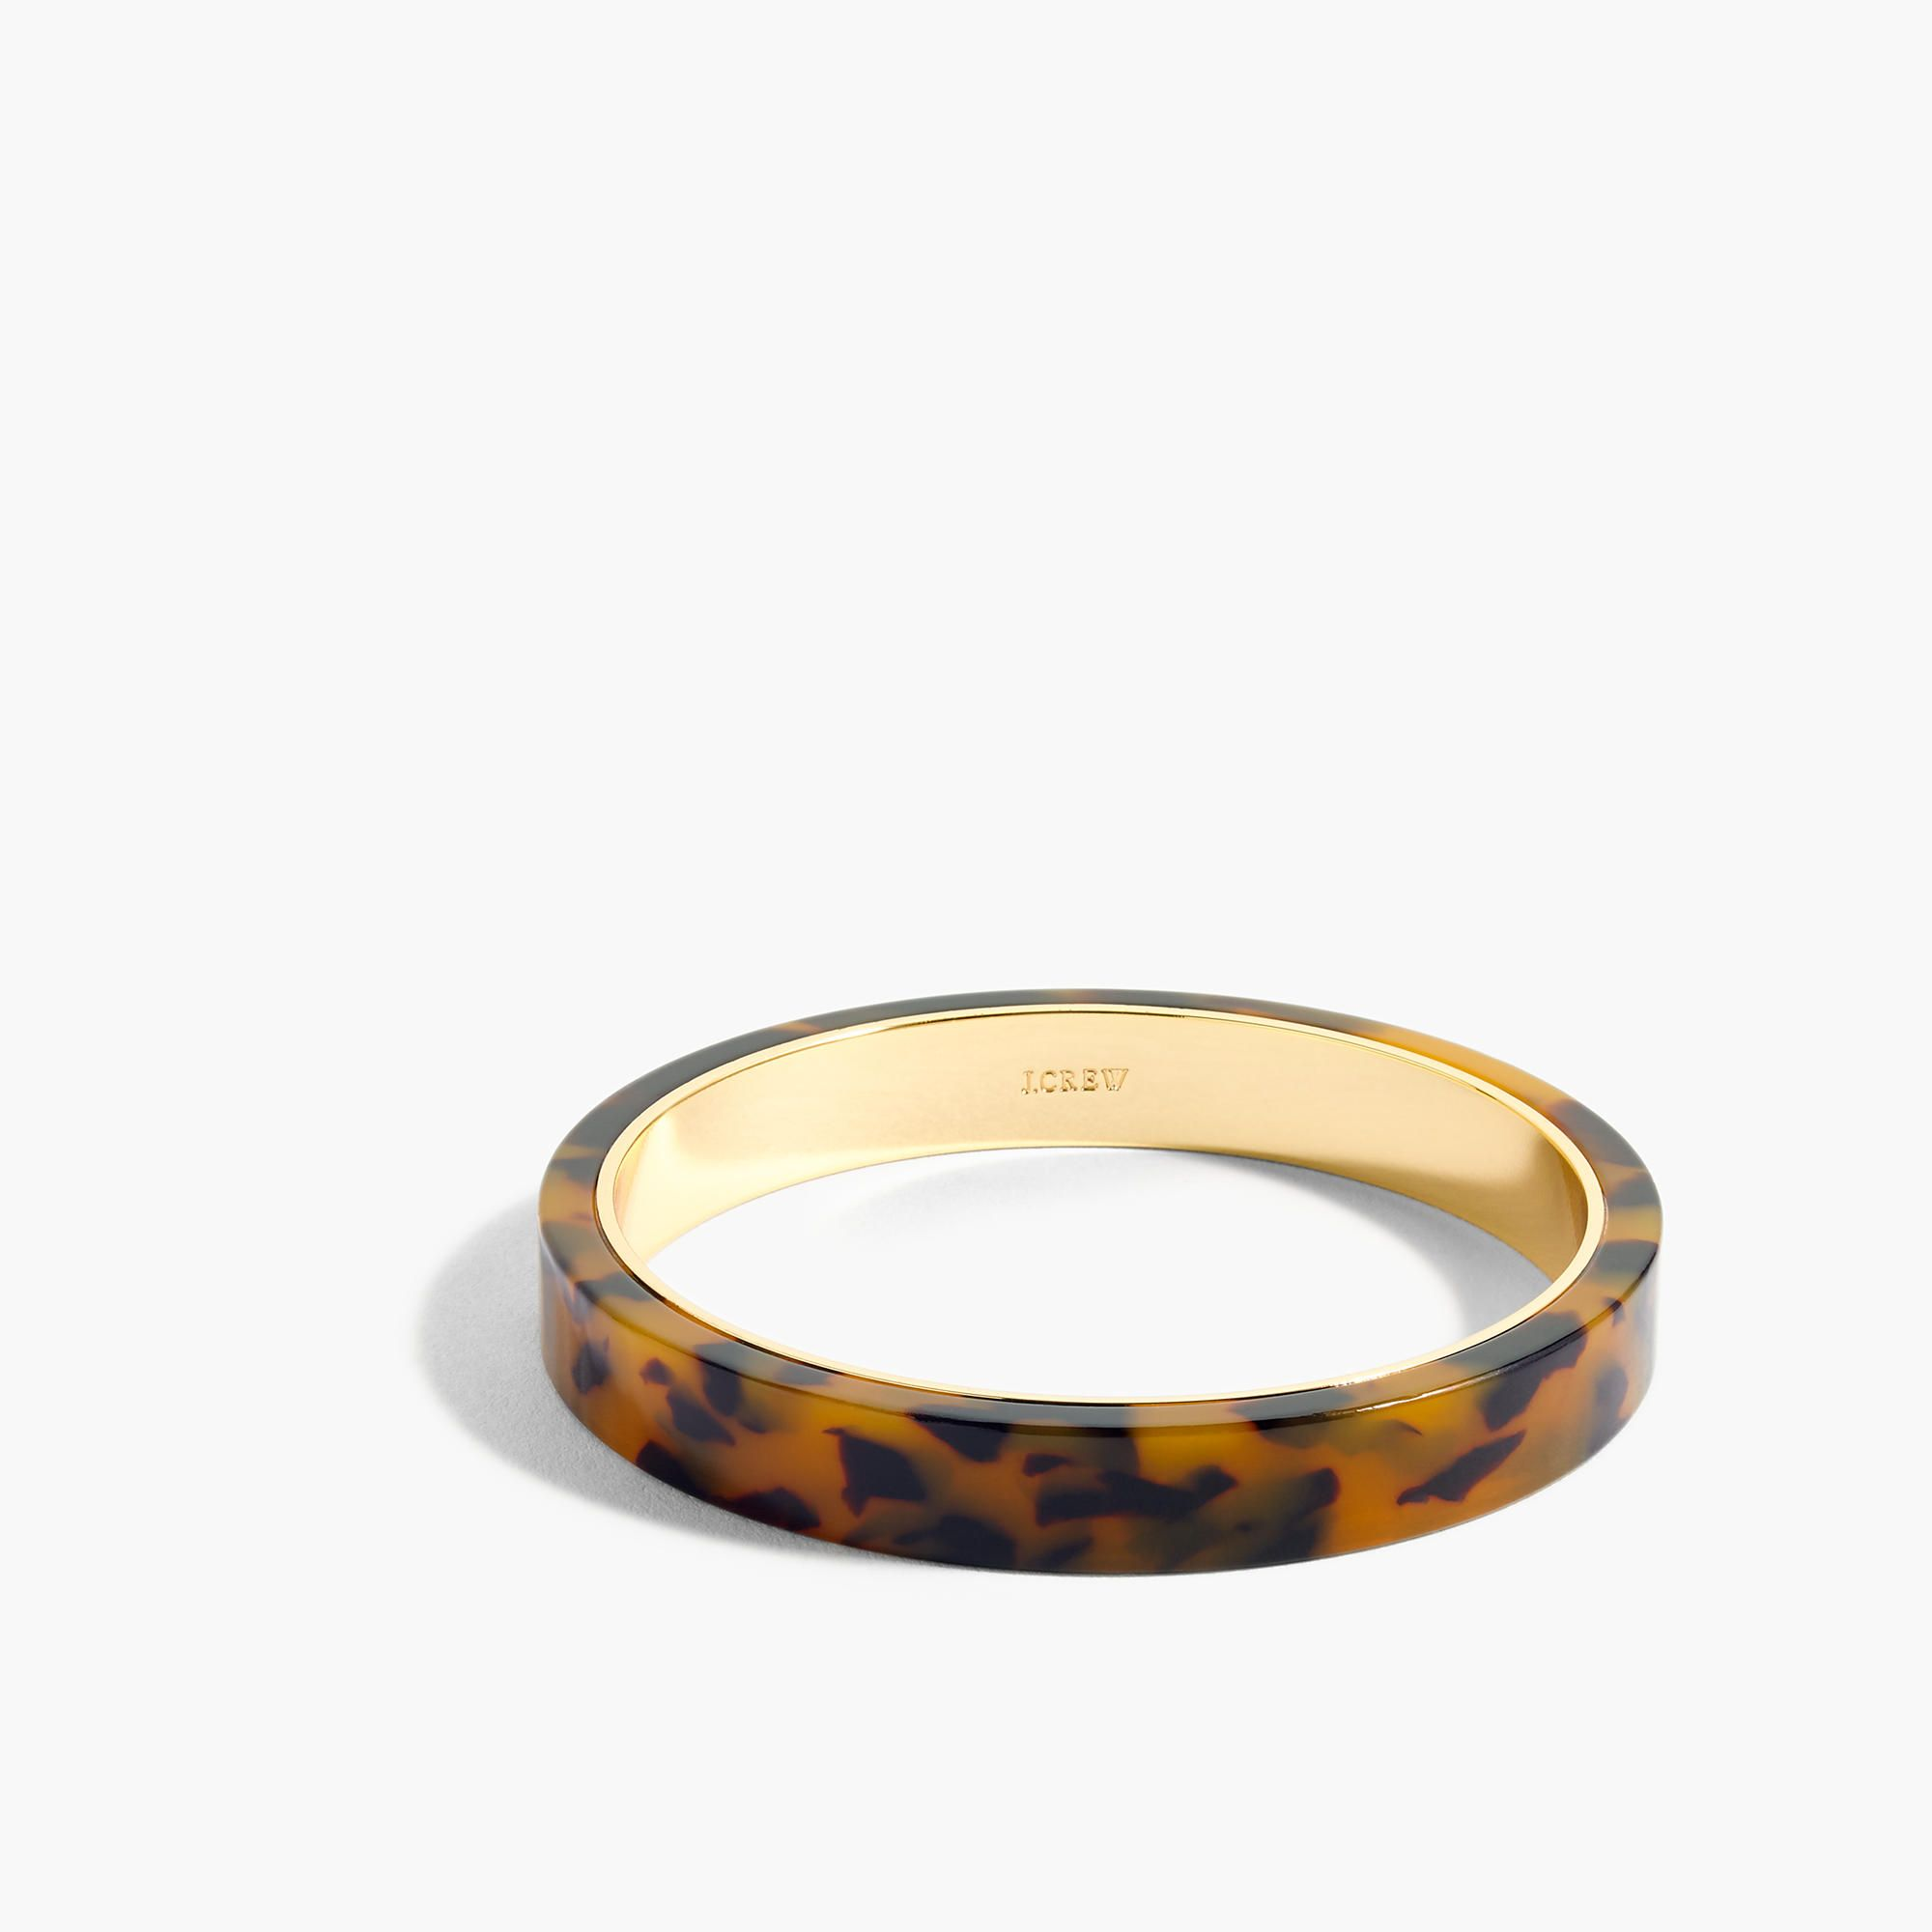 A classic resin bangle that looks good on its own or stacked brass